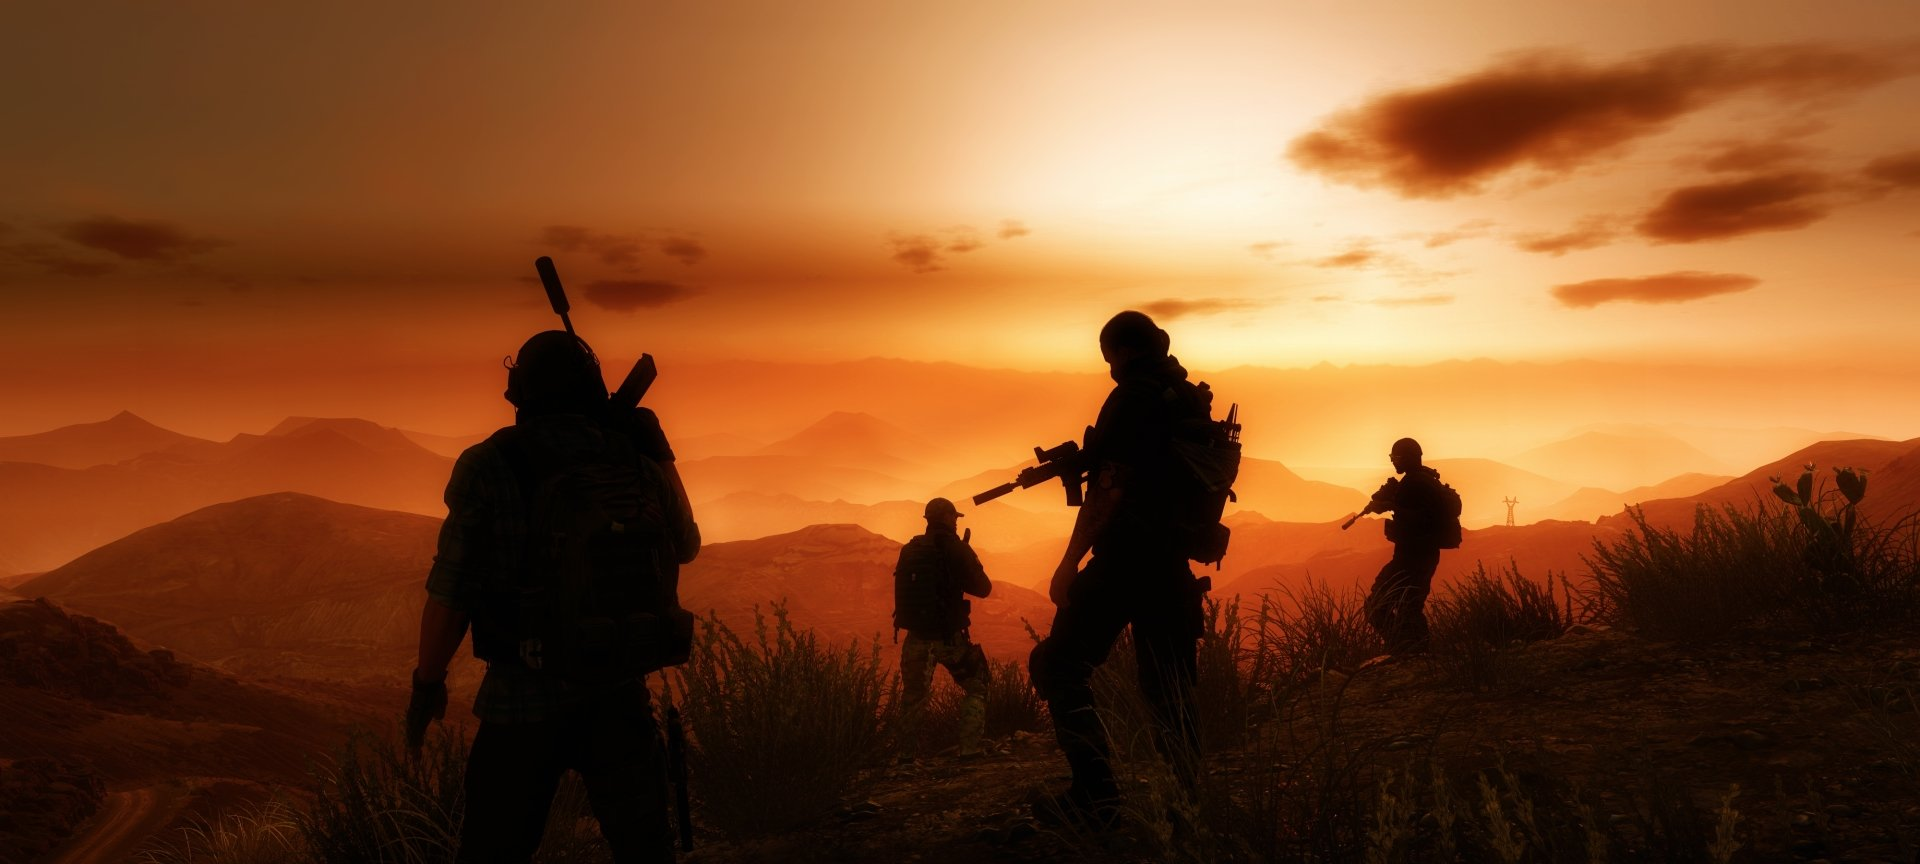 Free 2013 Ghost Recon Hd Wallpaper Mikespike123